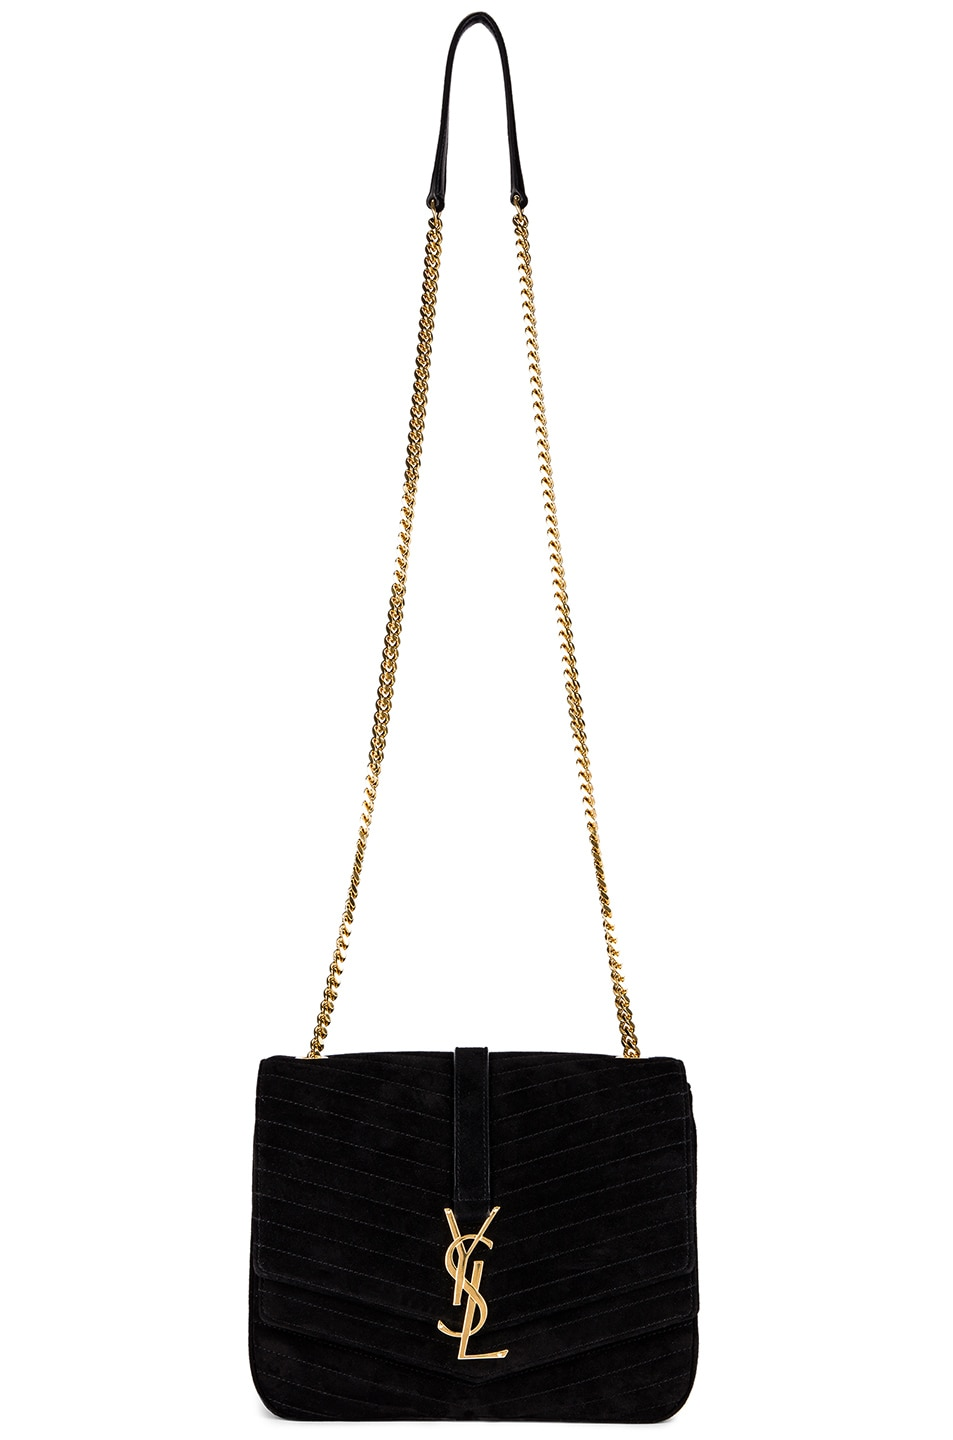 Image 3 of Saint Laurent Medium Sulpice Chain Suede Quilted Bag in Black